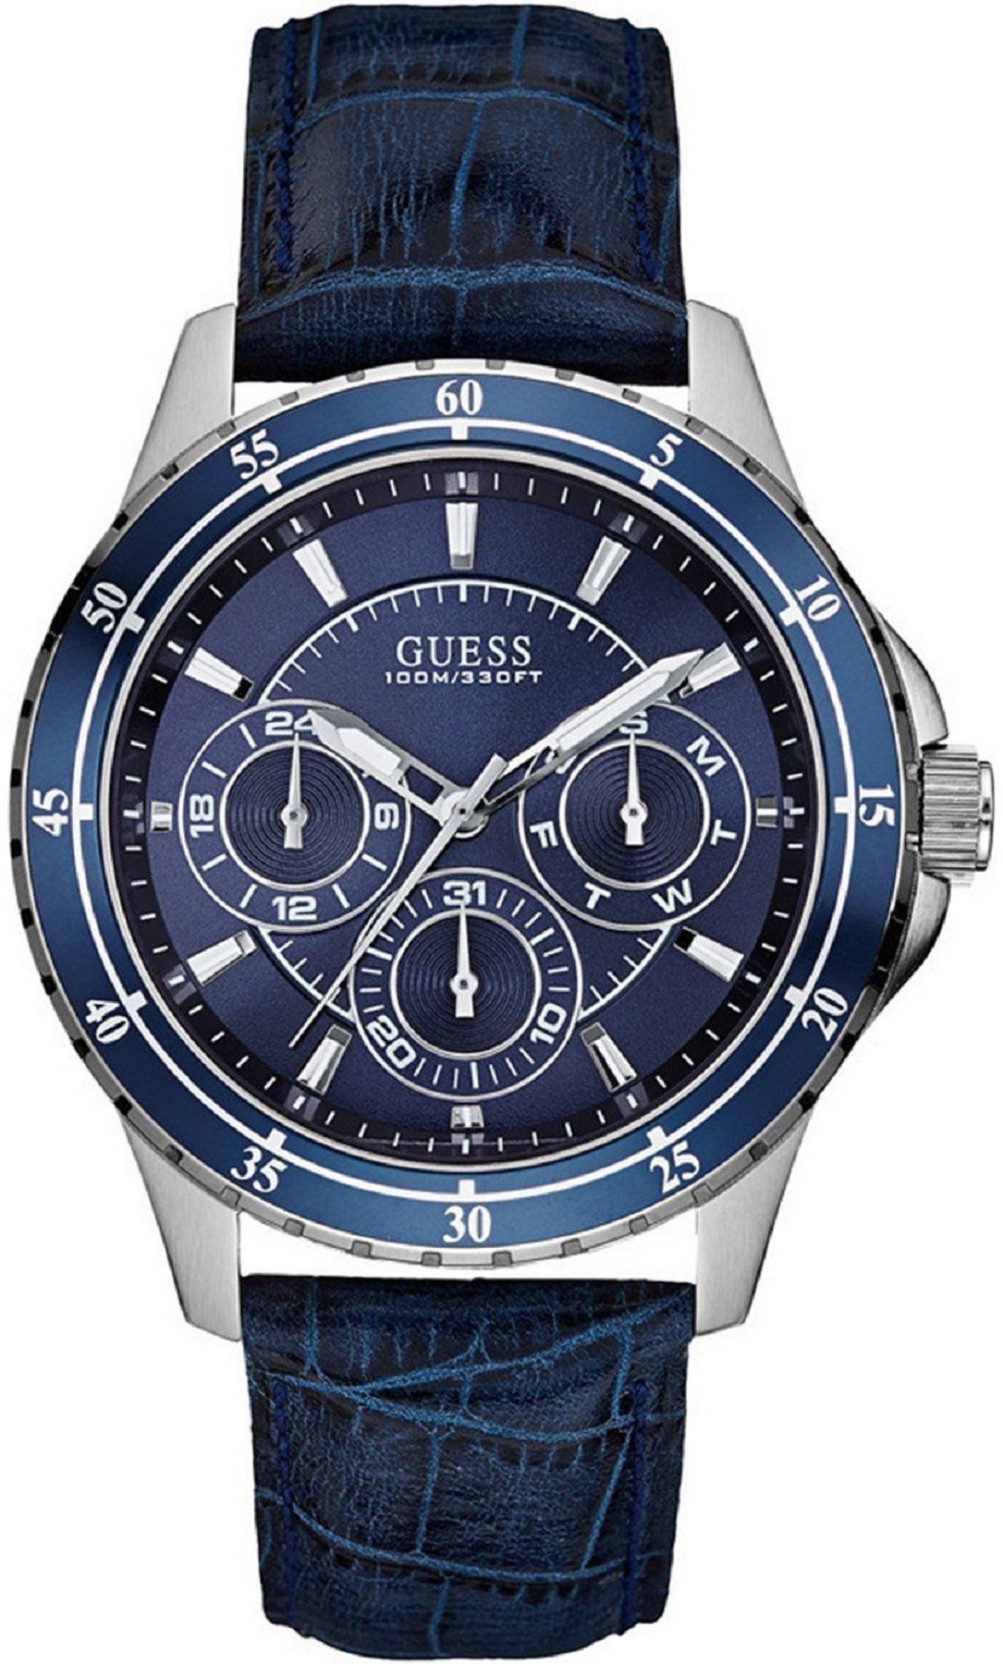 Guess2 Guess Buy Formal Watch Watches For Men Rj4L3qc5A